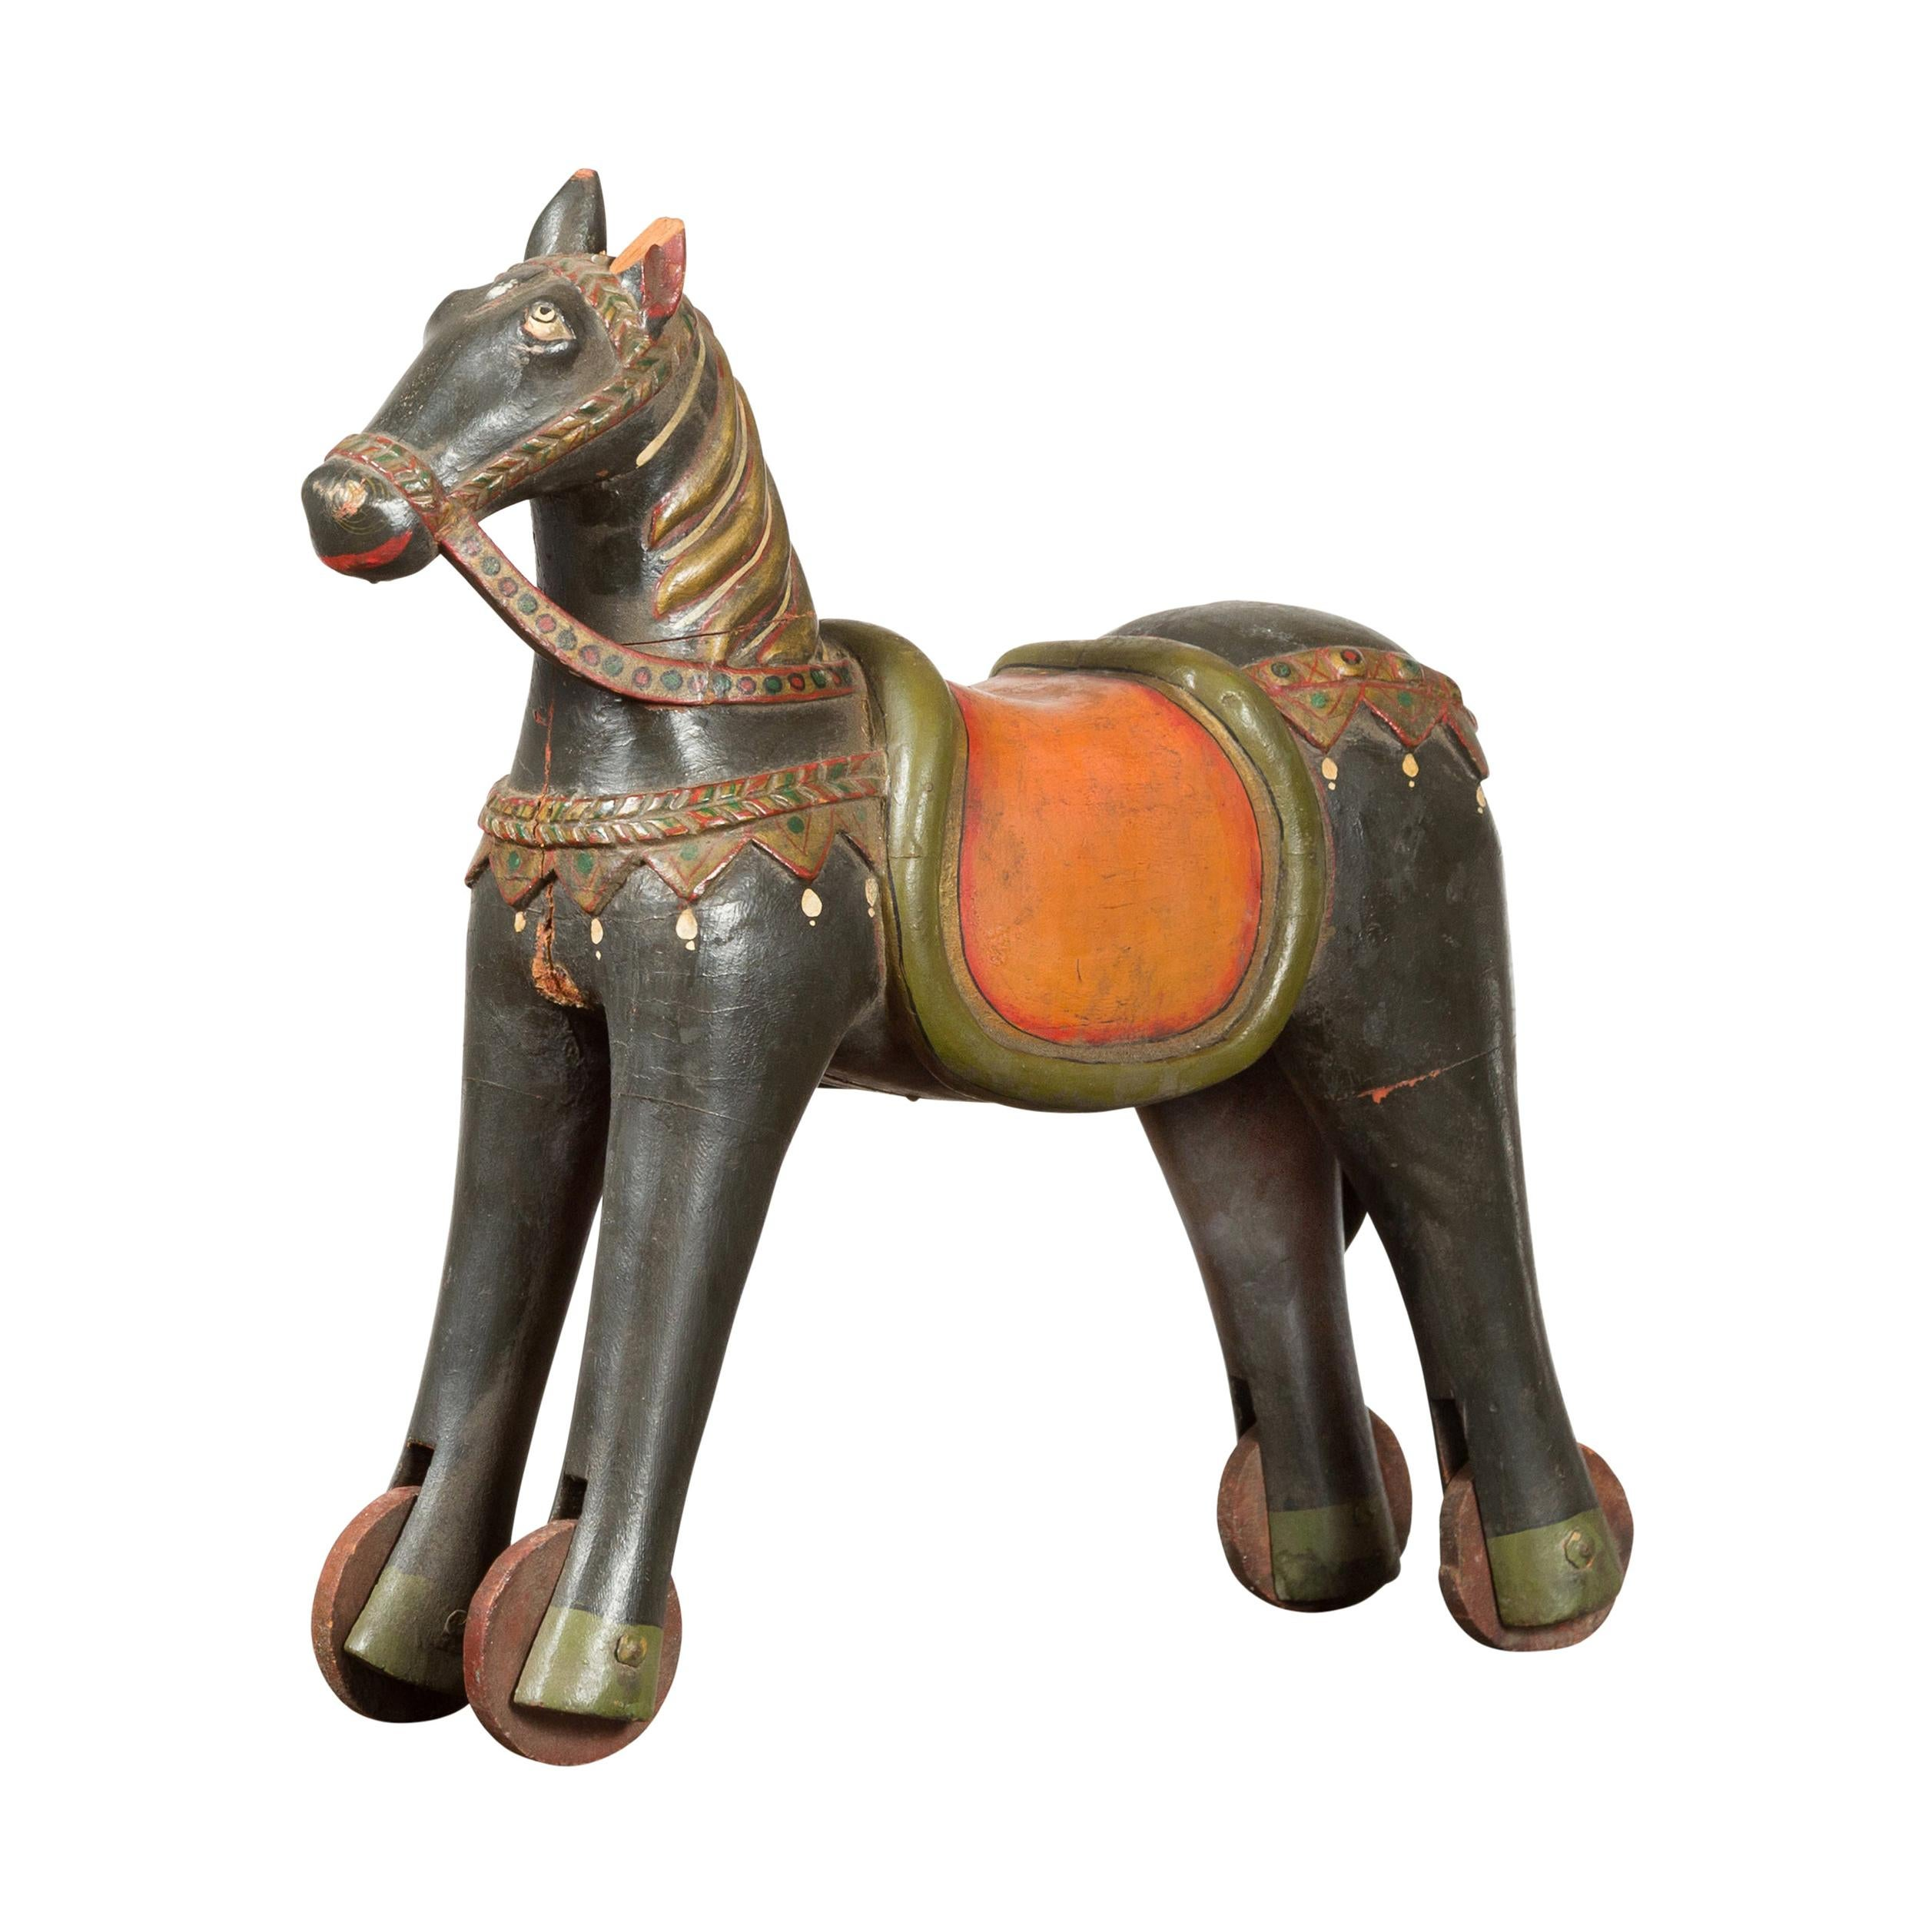 Antique Indian Mughal Horse on Wheels Sculpture with Polychrome Finish